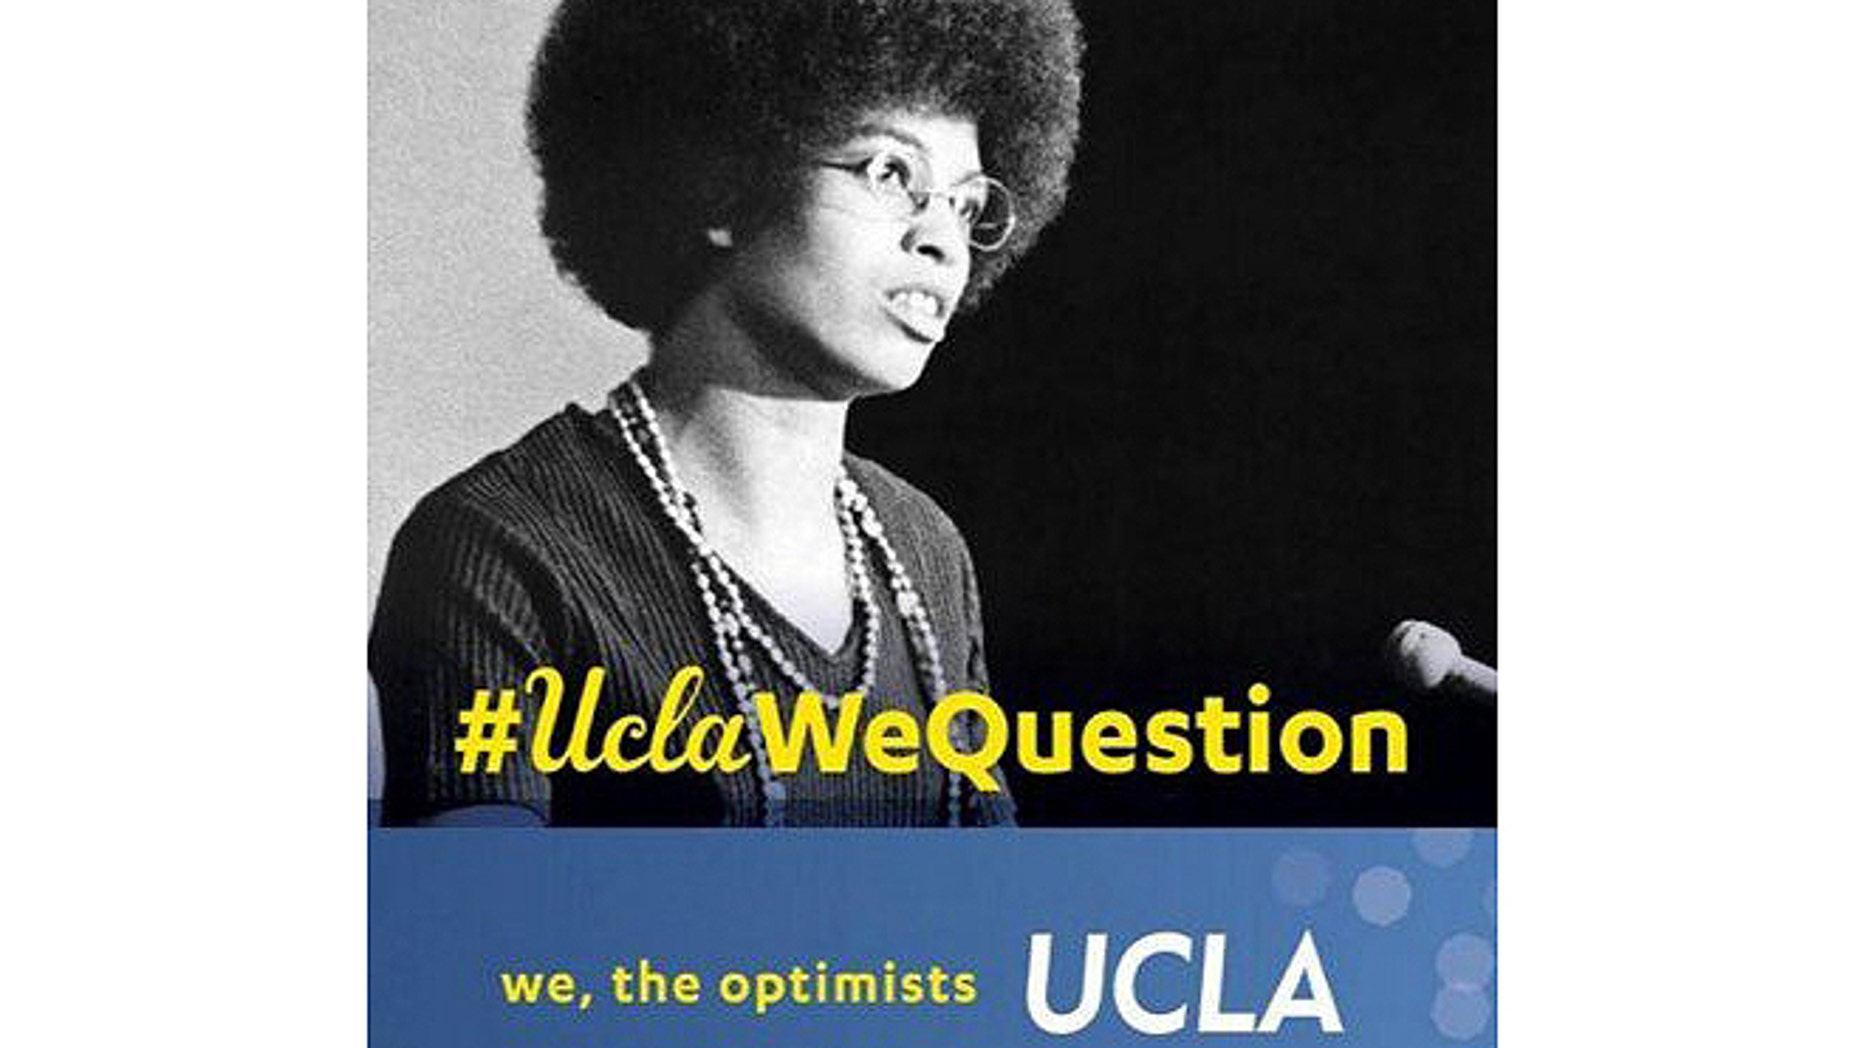 Some students on the campus of UCLA have taken offense to this banner featuring former professor and avowed communist Angela Davis.